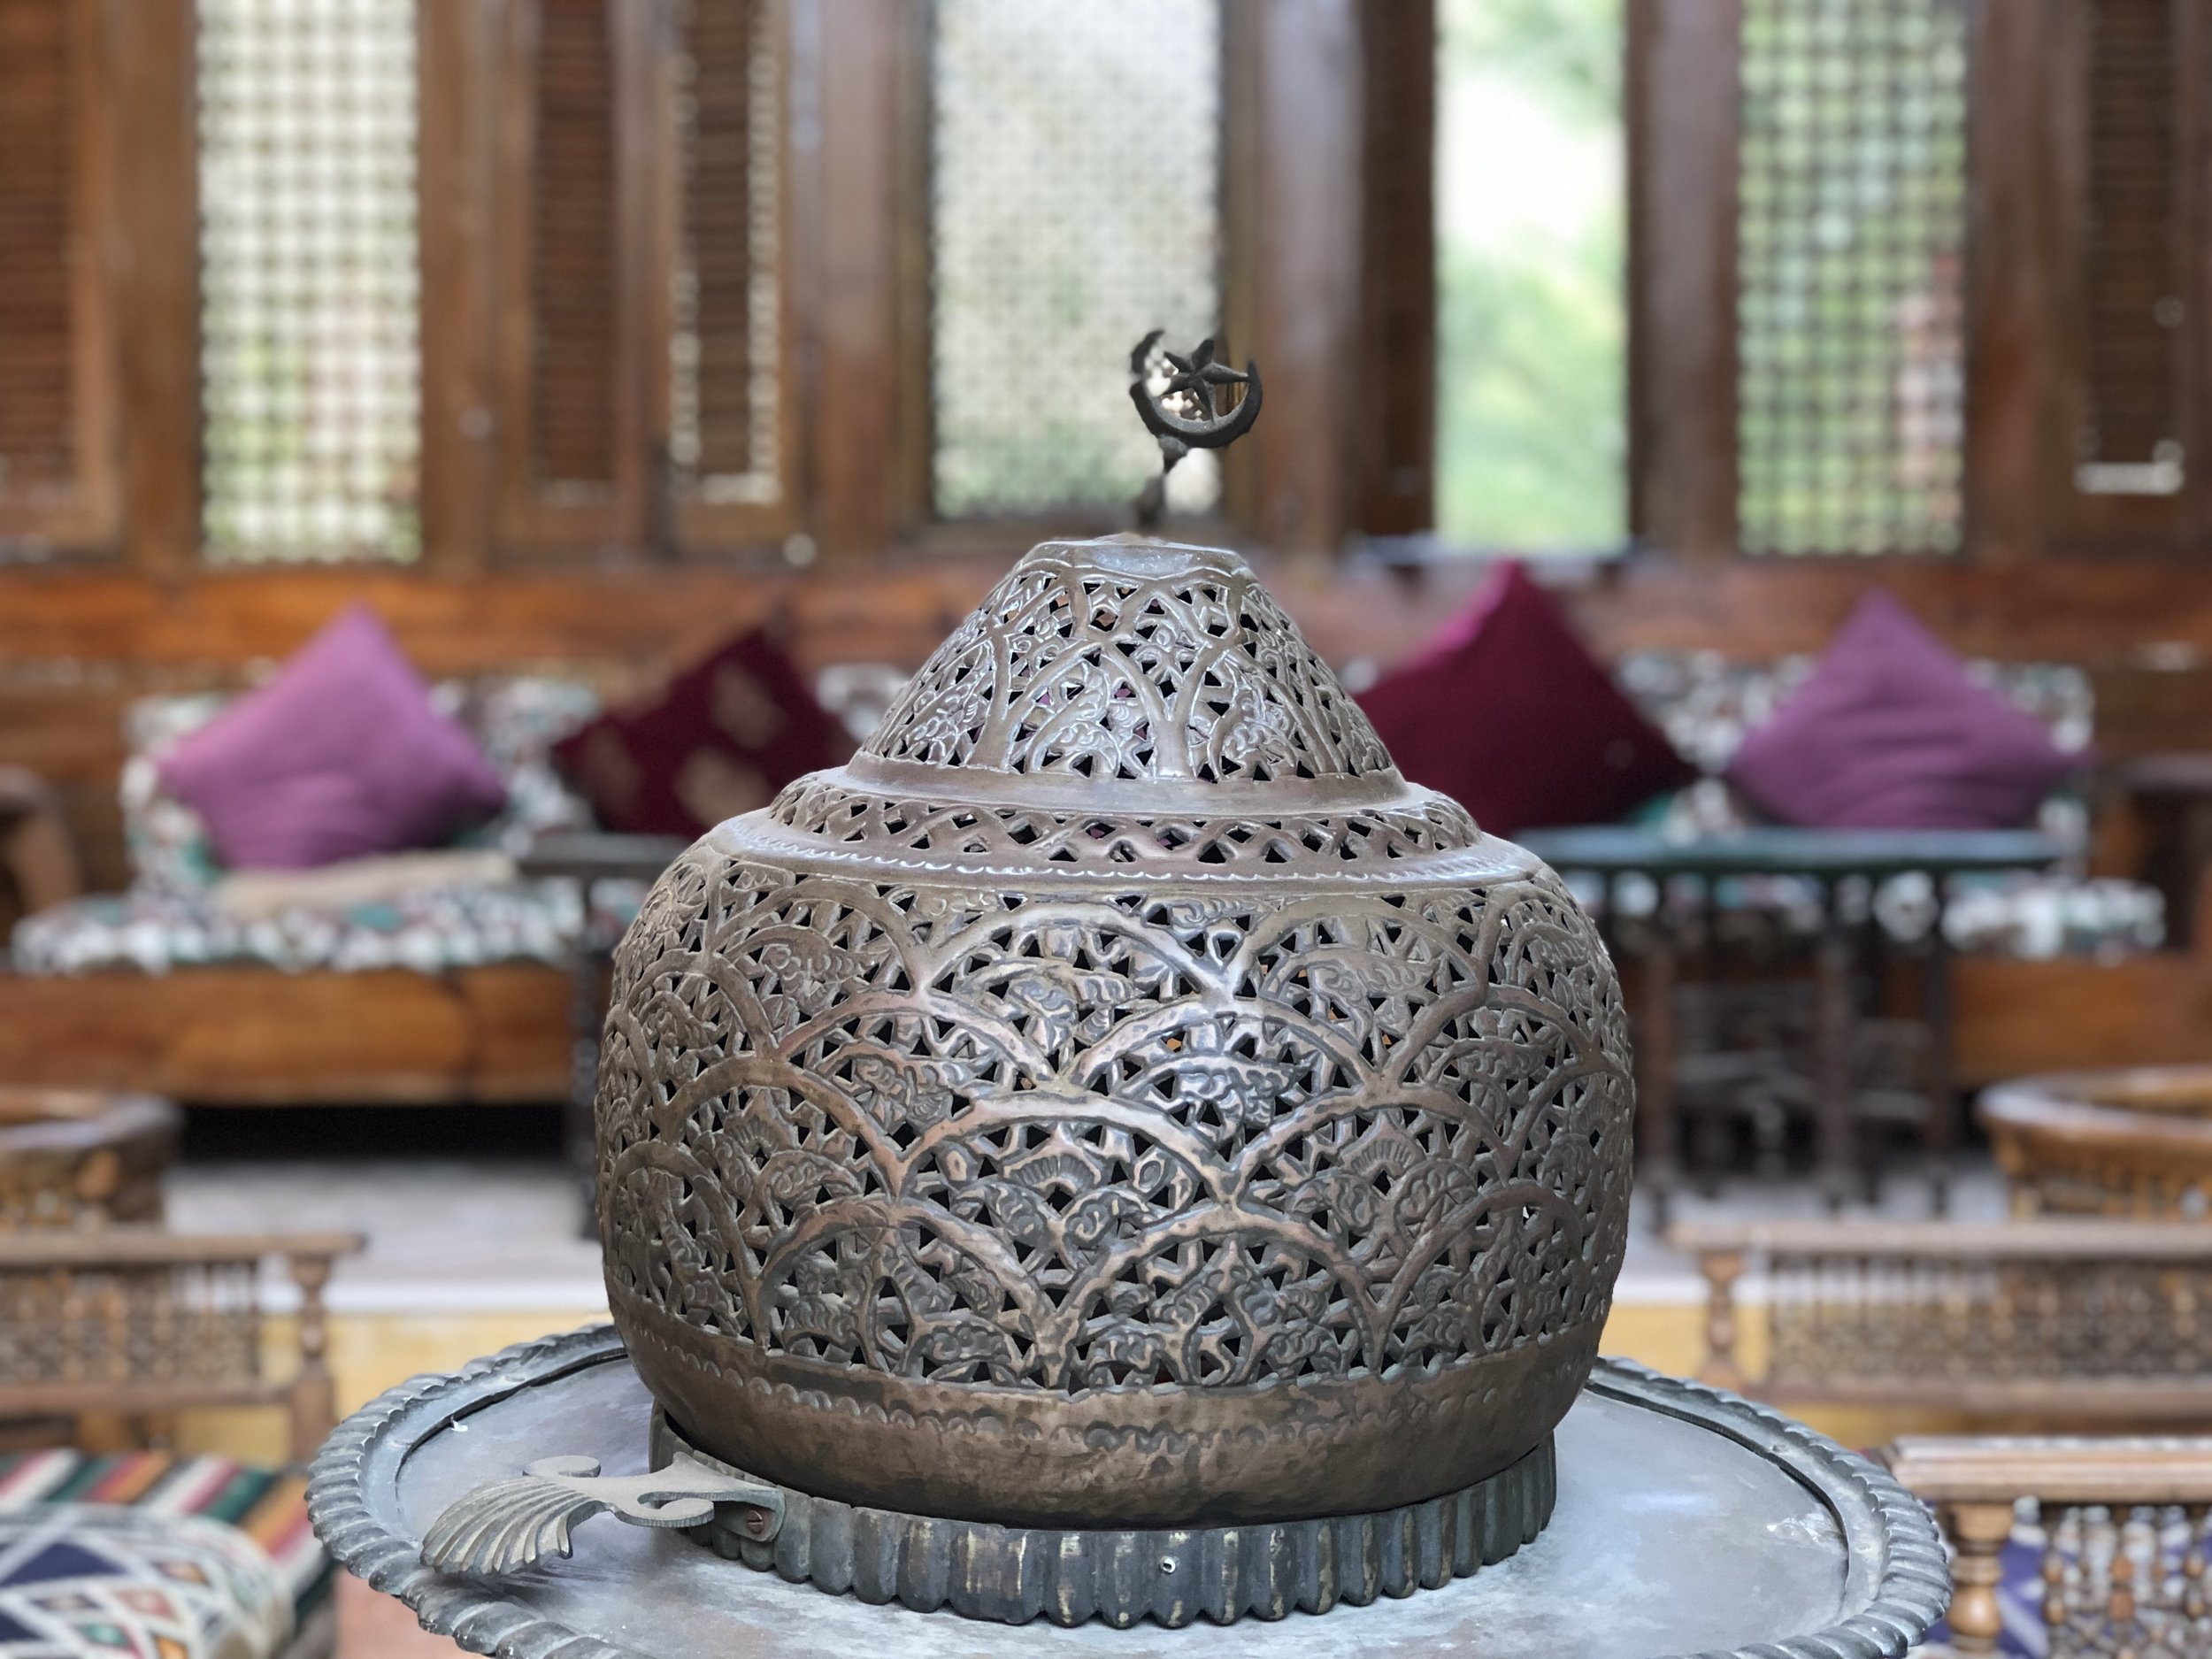 The beautiful objects found throughout the hotel have been collected by Zeina, the owner